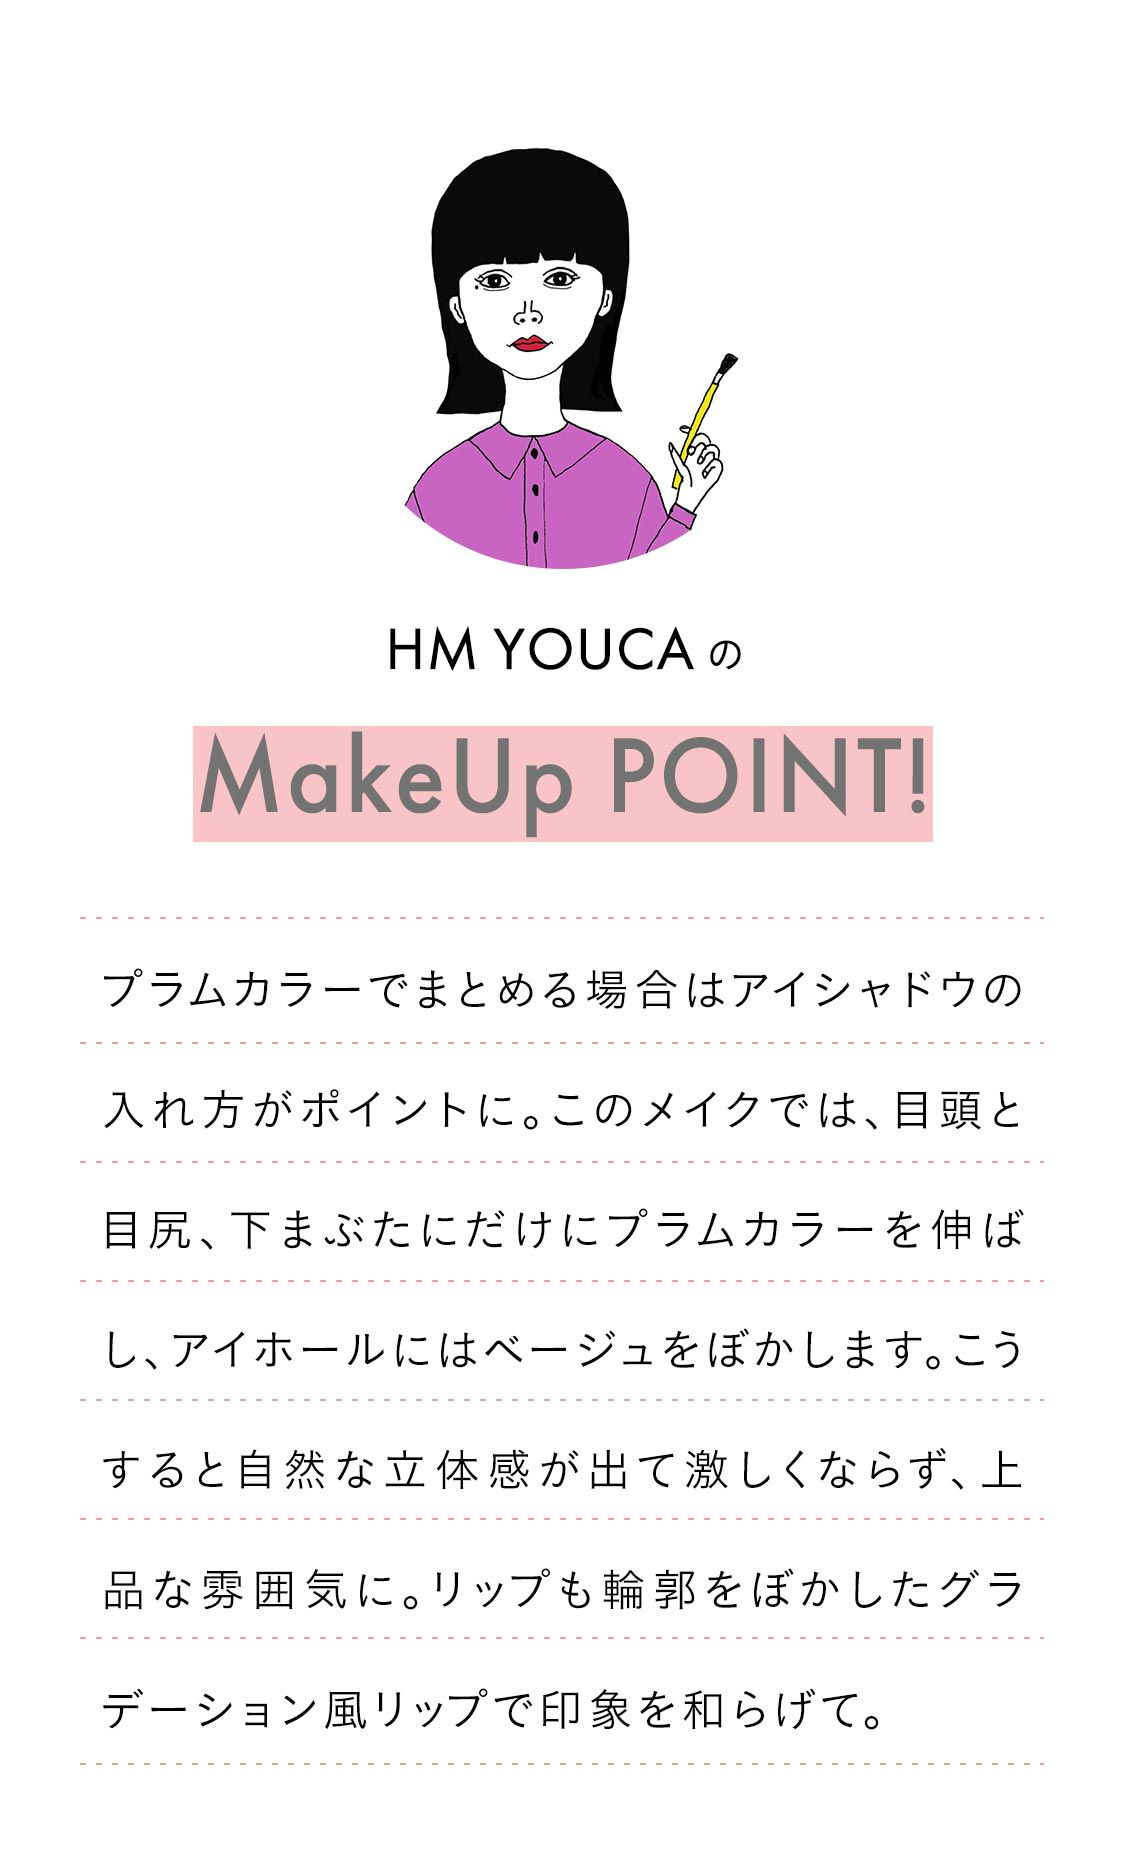 youca's makeup point